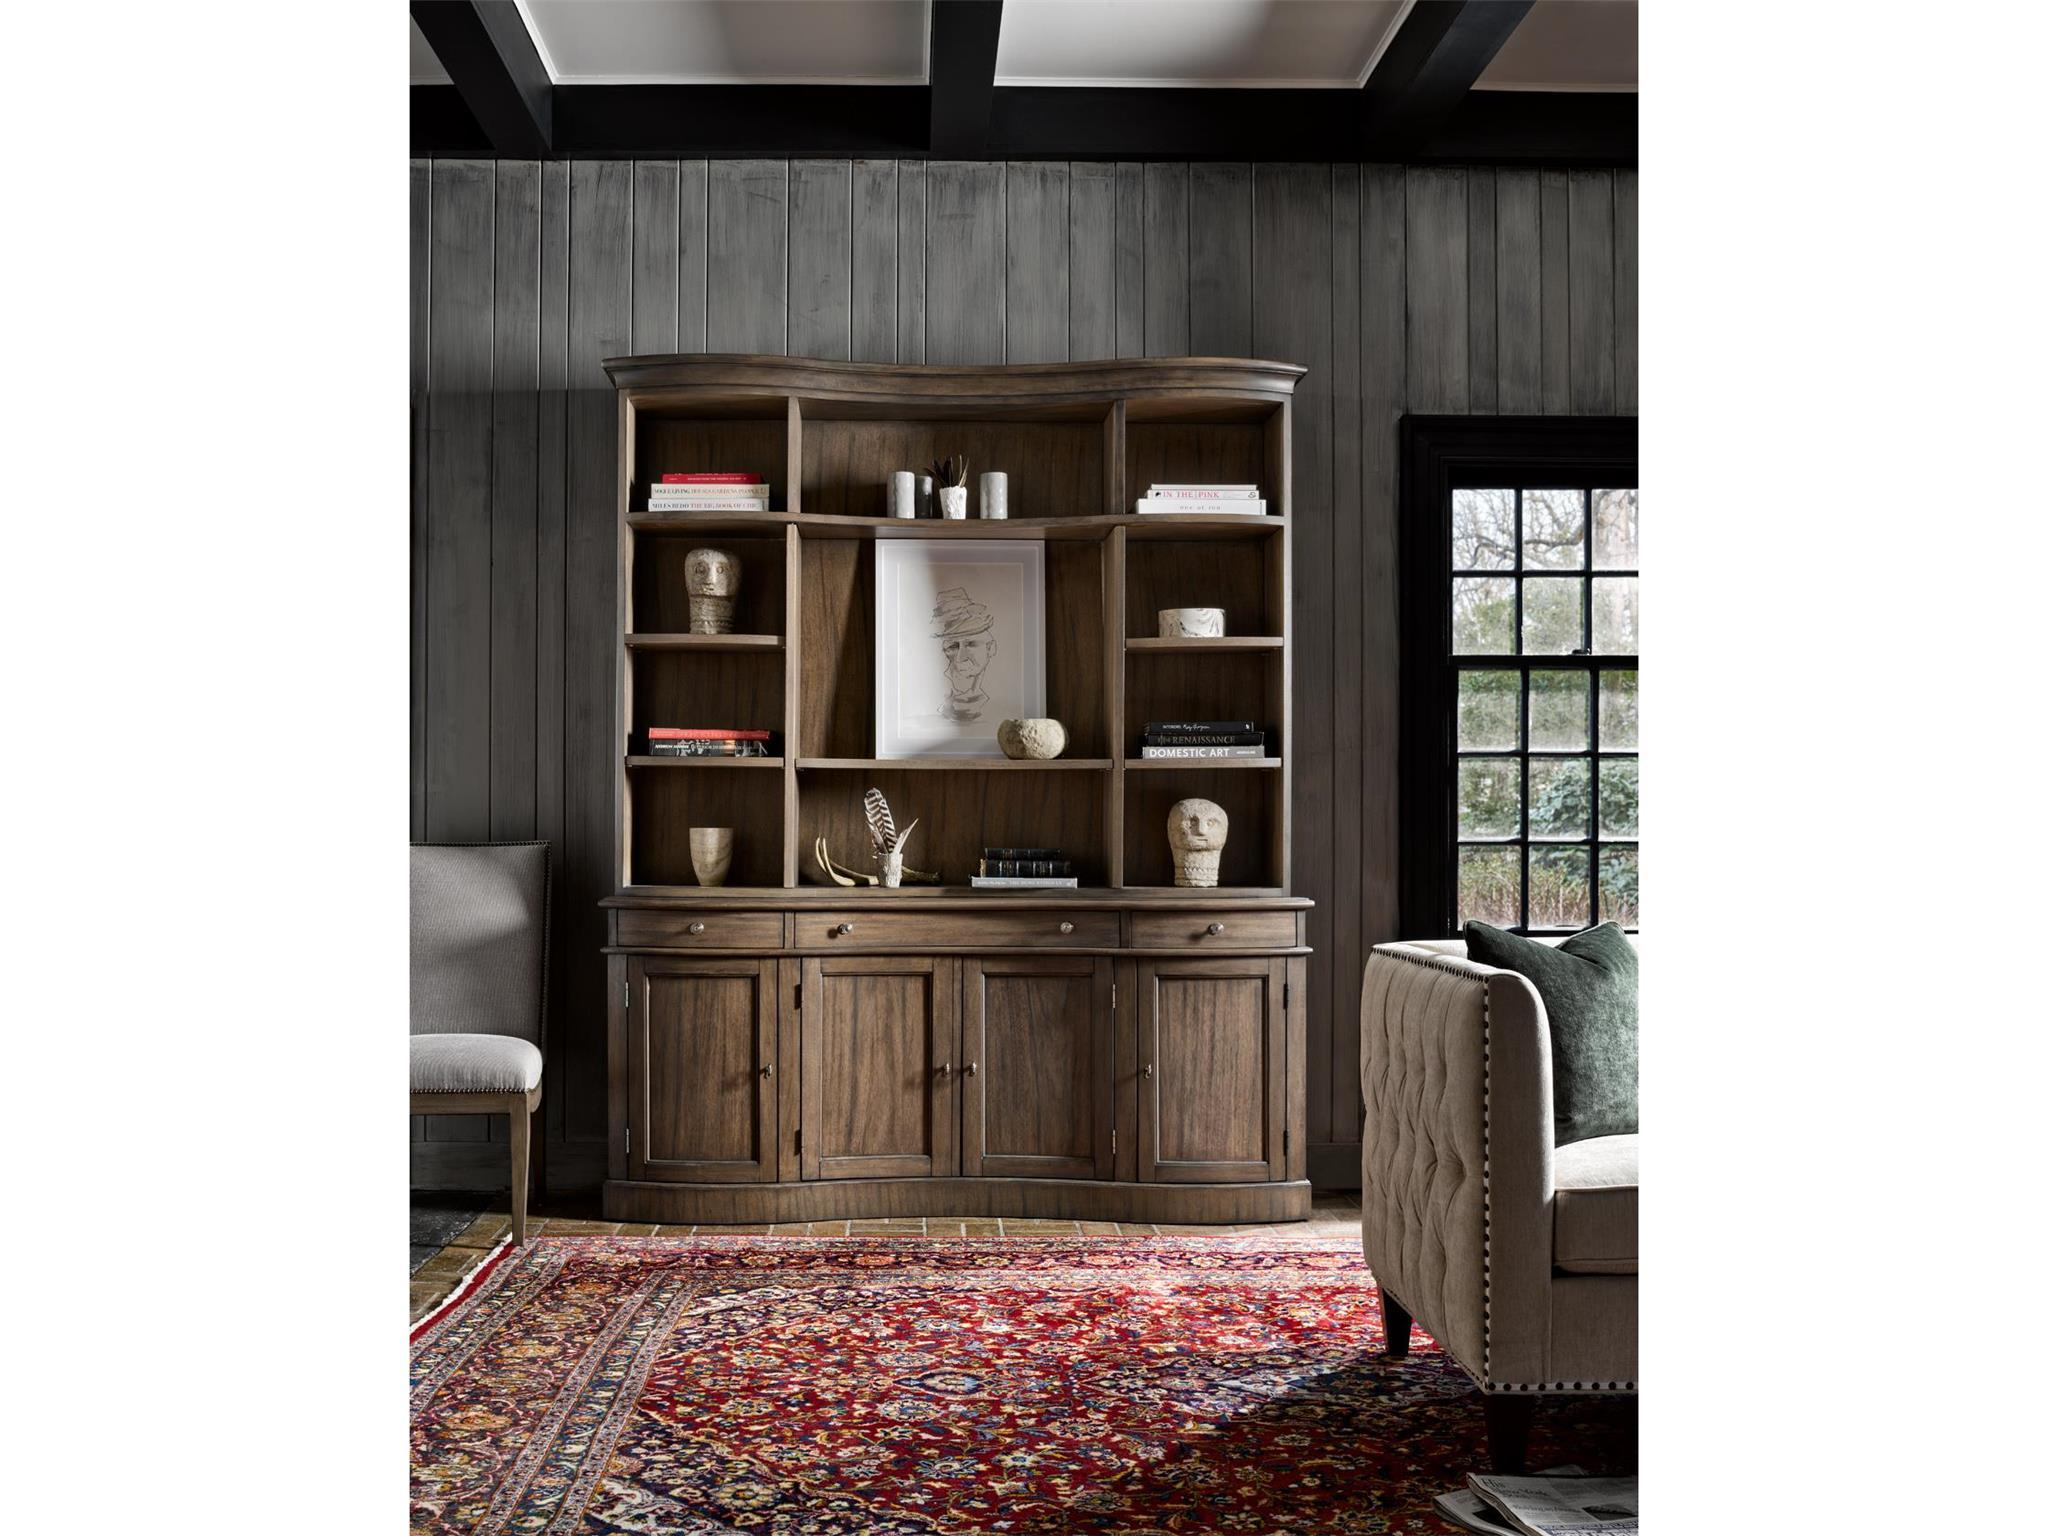 Barrister Bookcase Luxfam Luxury Furniture Accessories